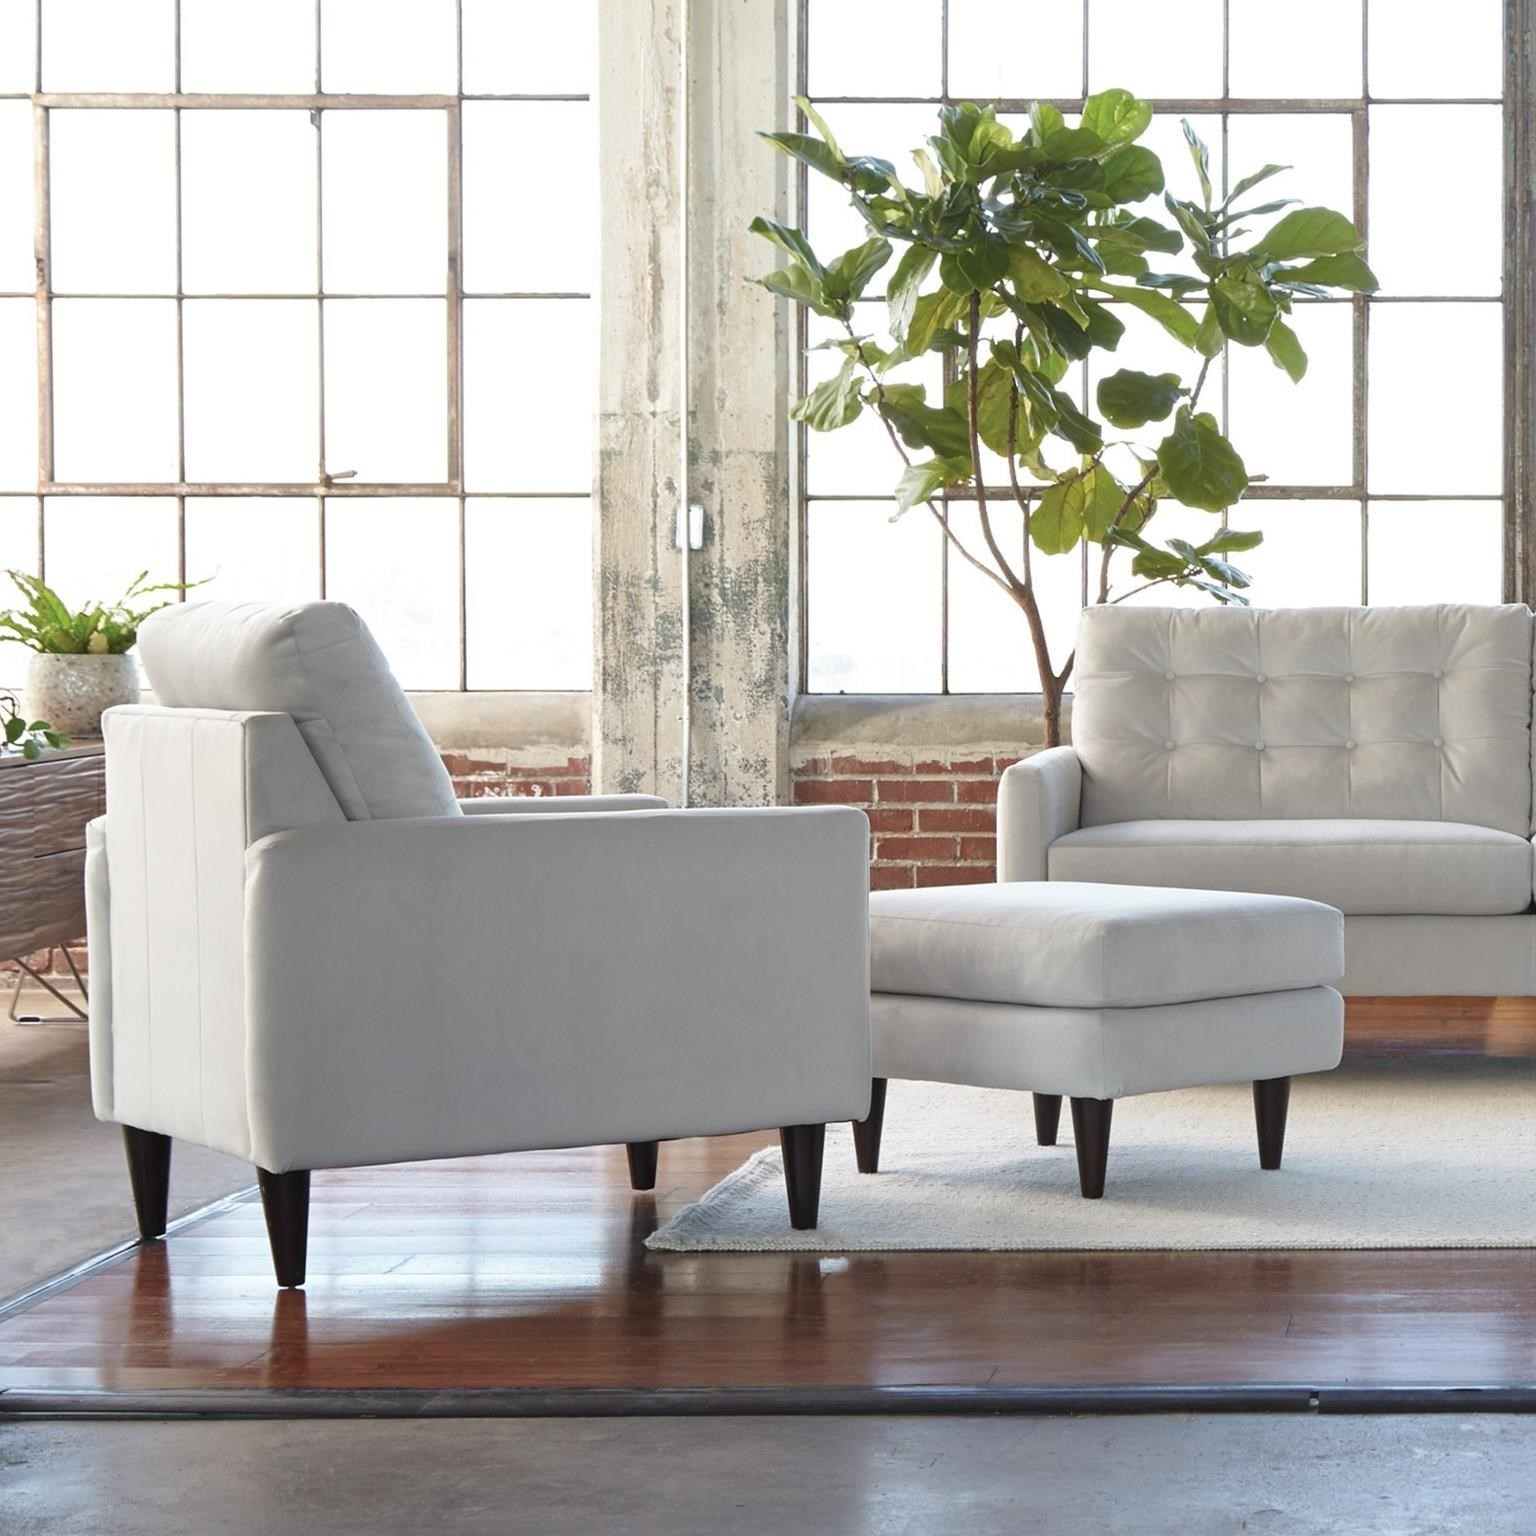 Genial Jackson Furniture Haley Mid Century Modern Chair And Ottoman